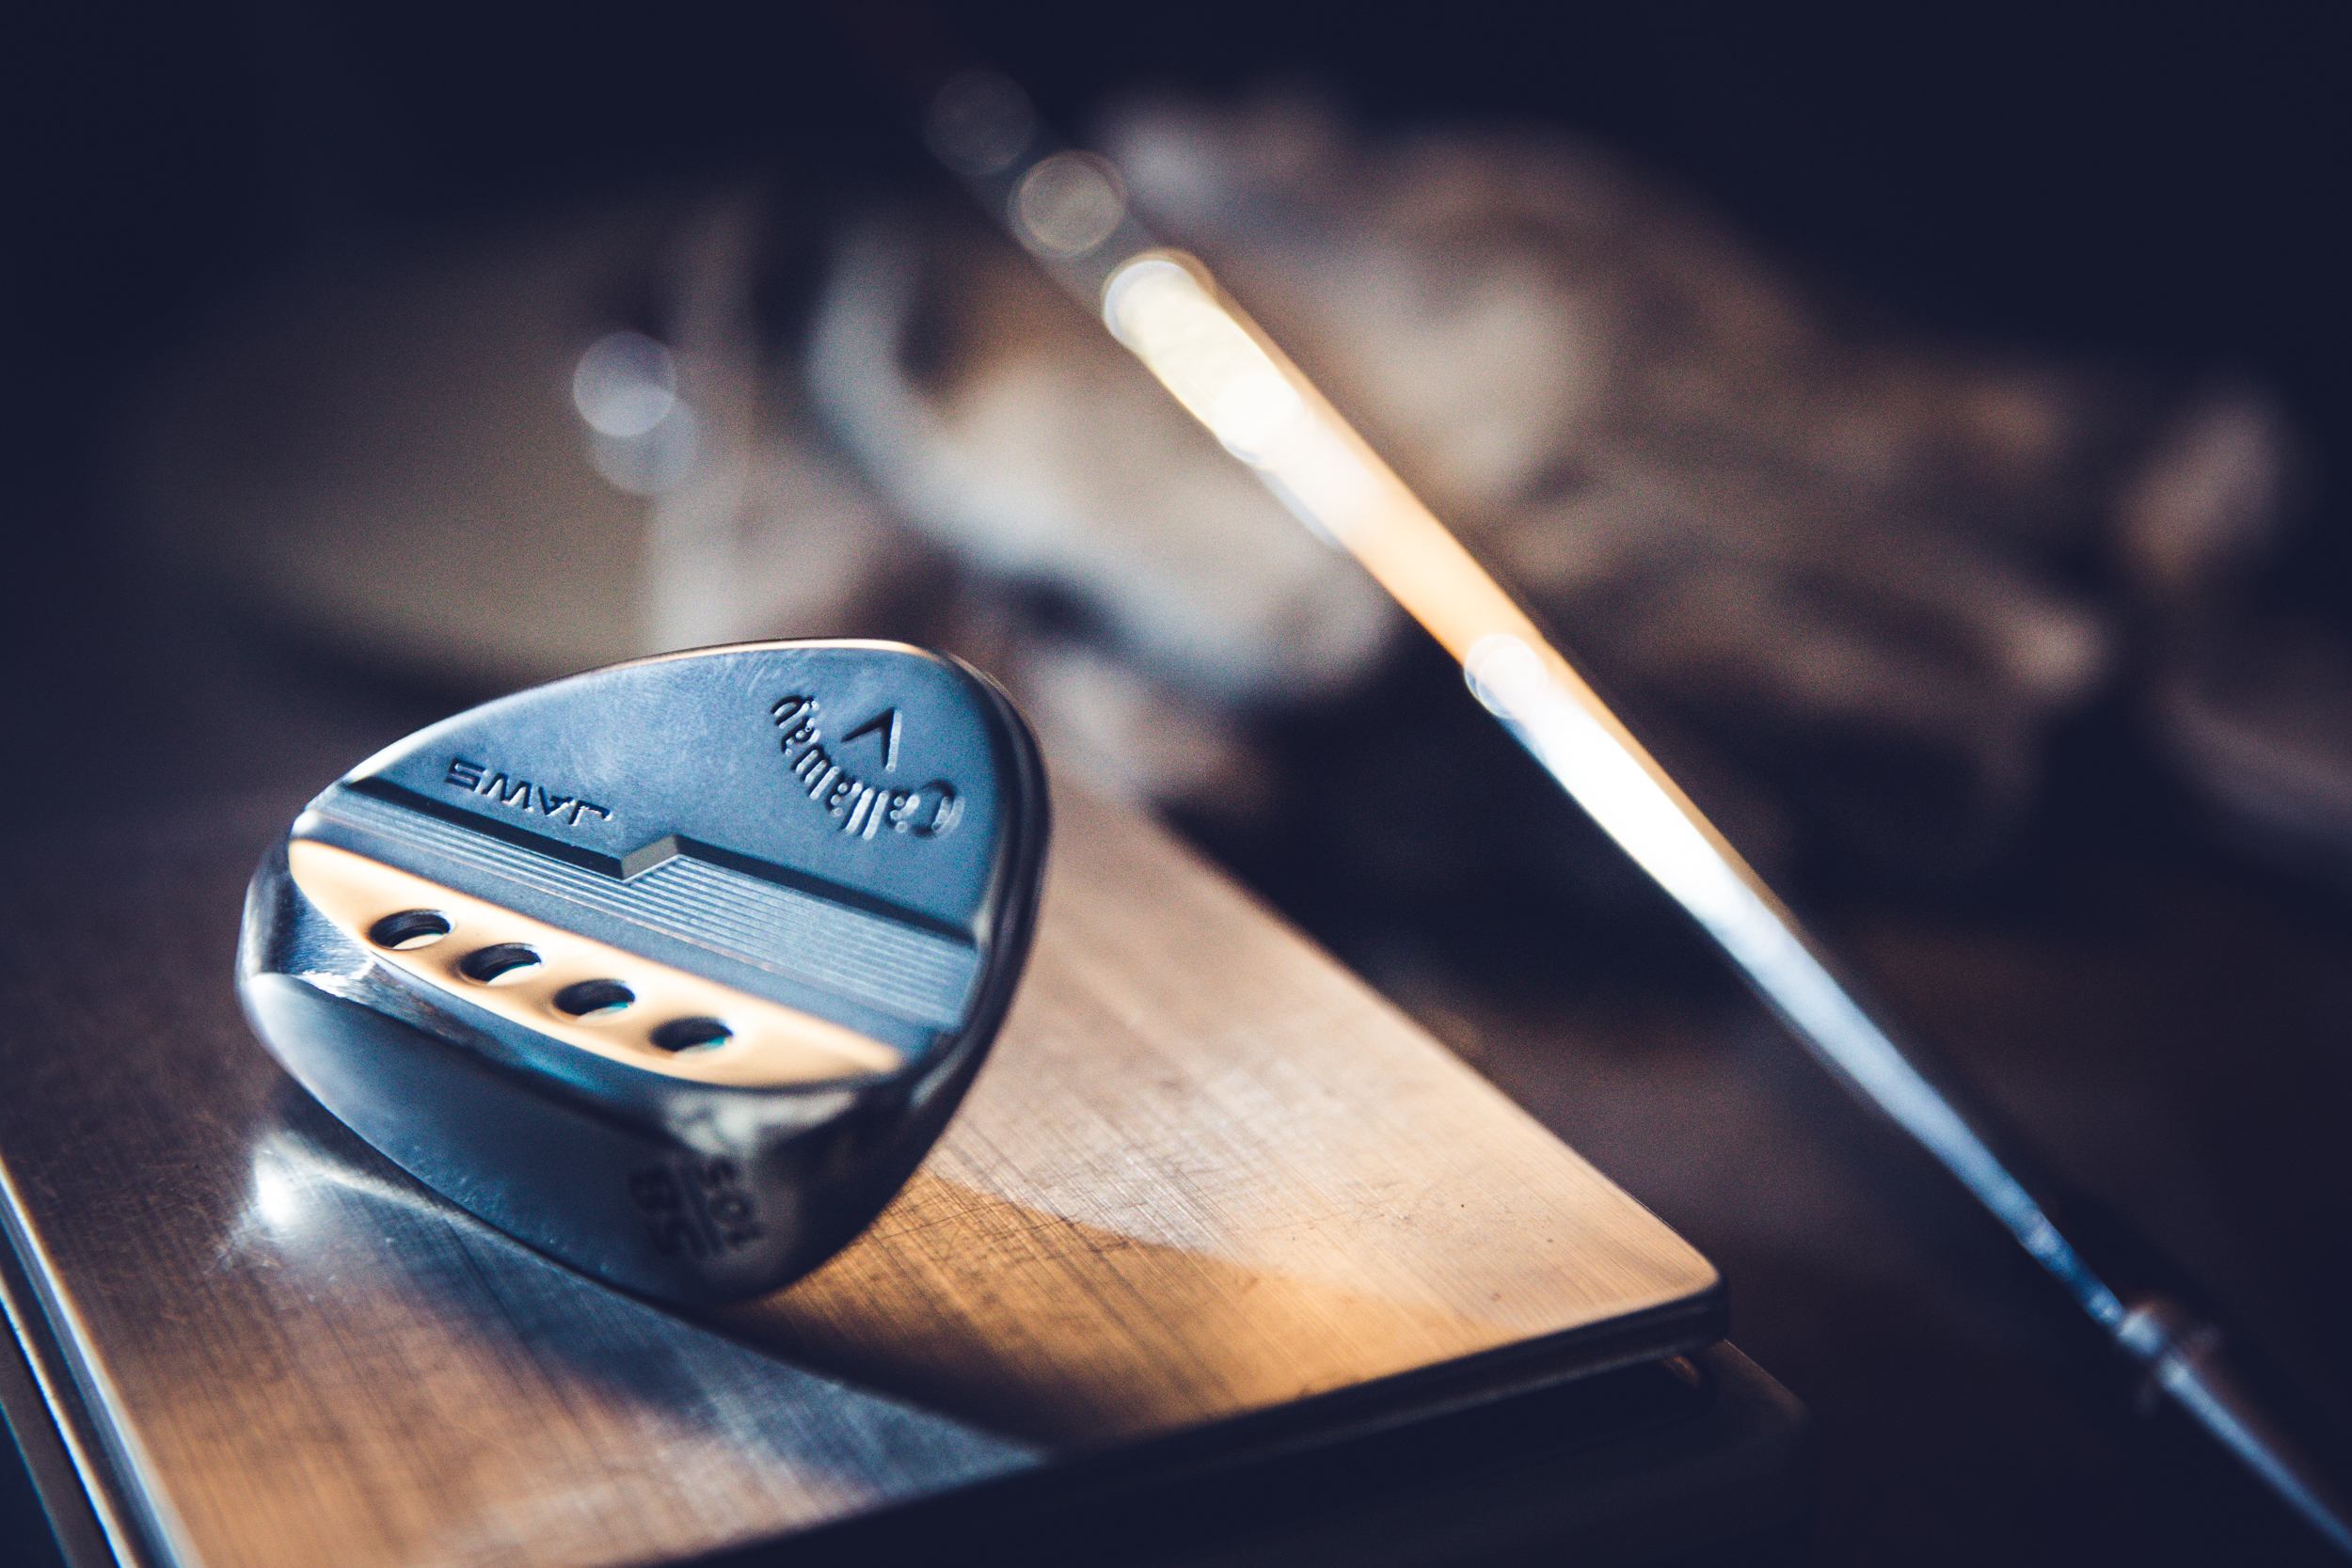 Callaway JAWS MD5 Wedge in lab